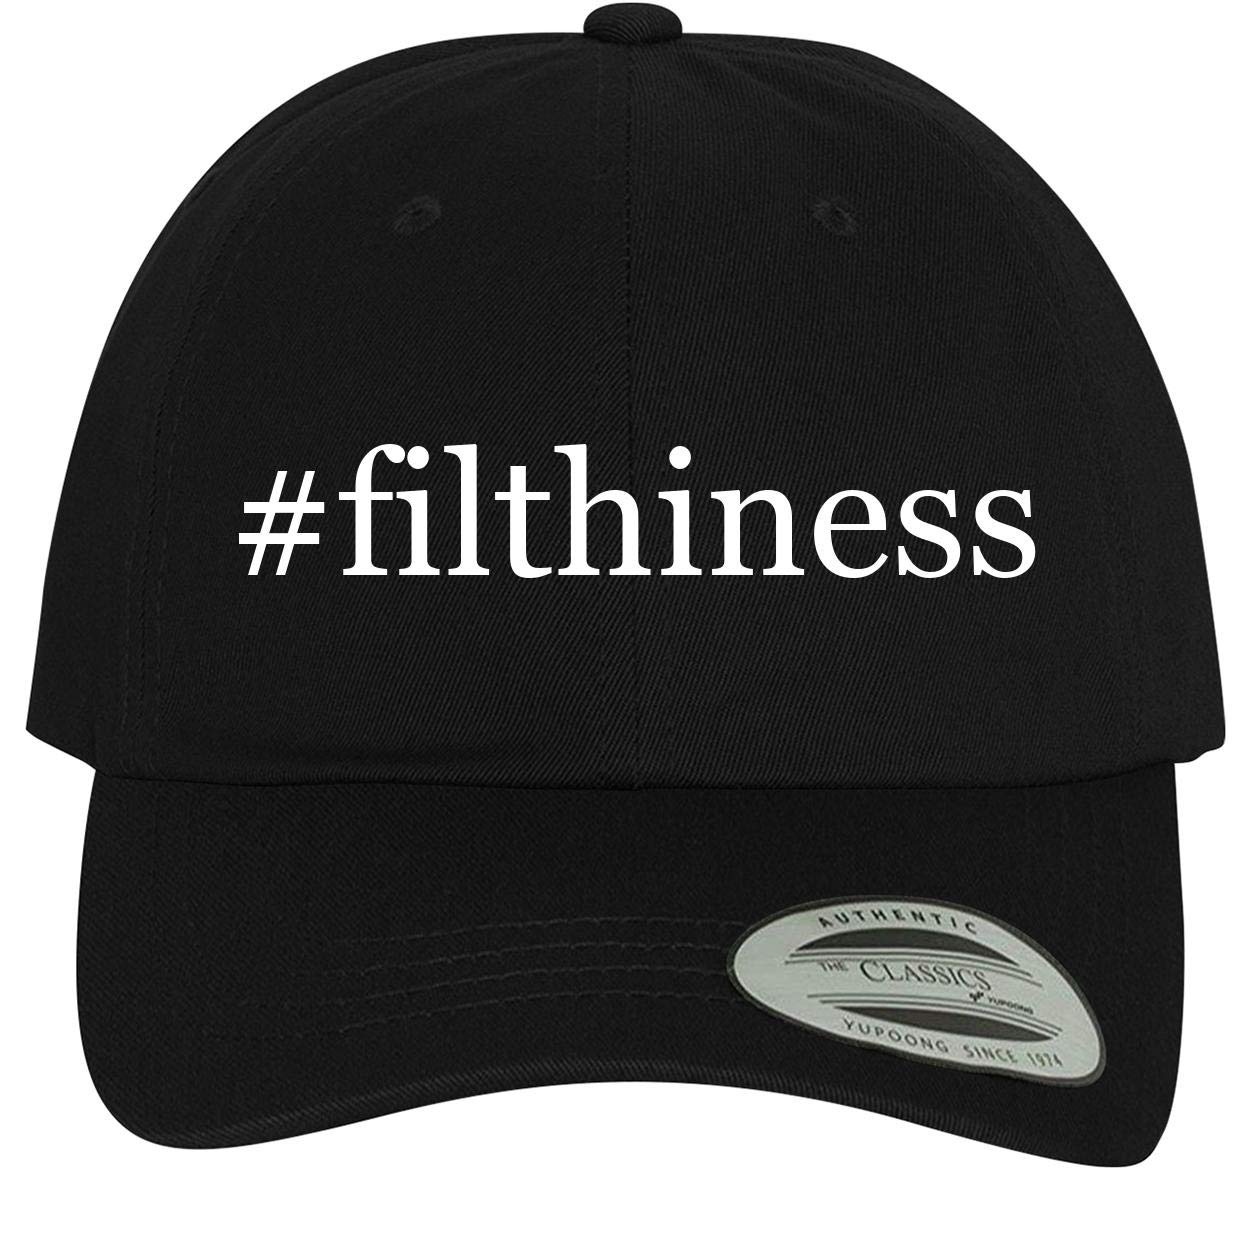 BH Cool Designs #Filthiness Comfortable Dad Hat Baseball Cap